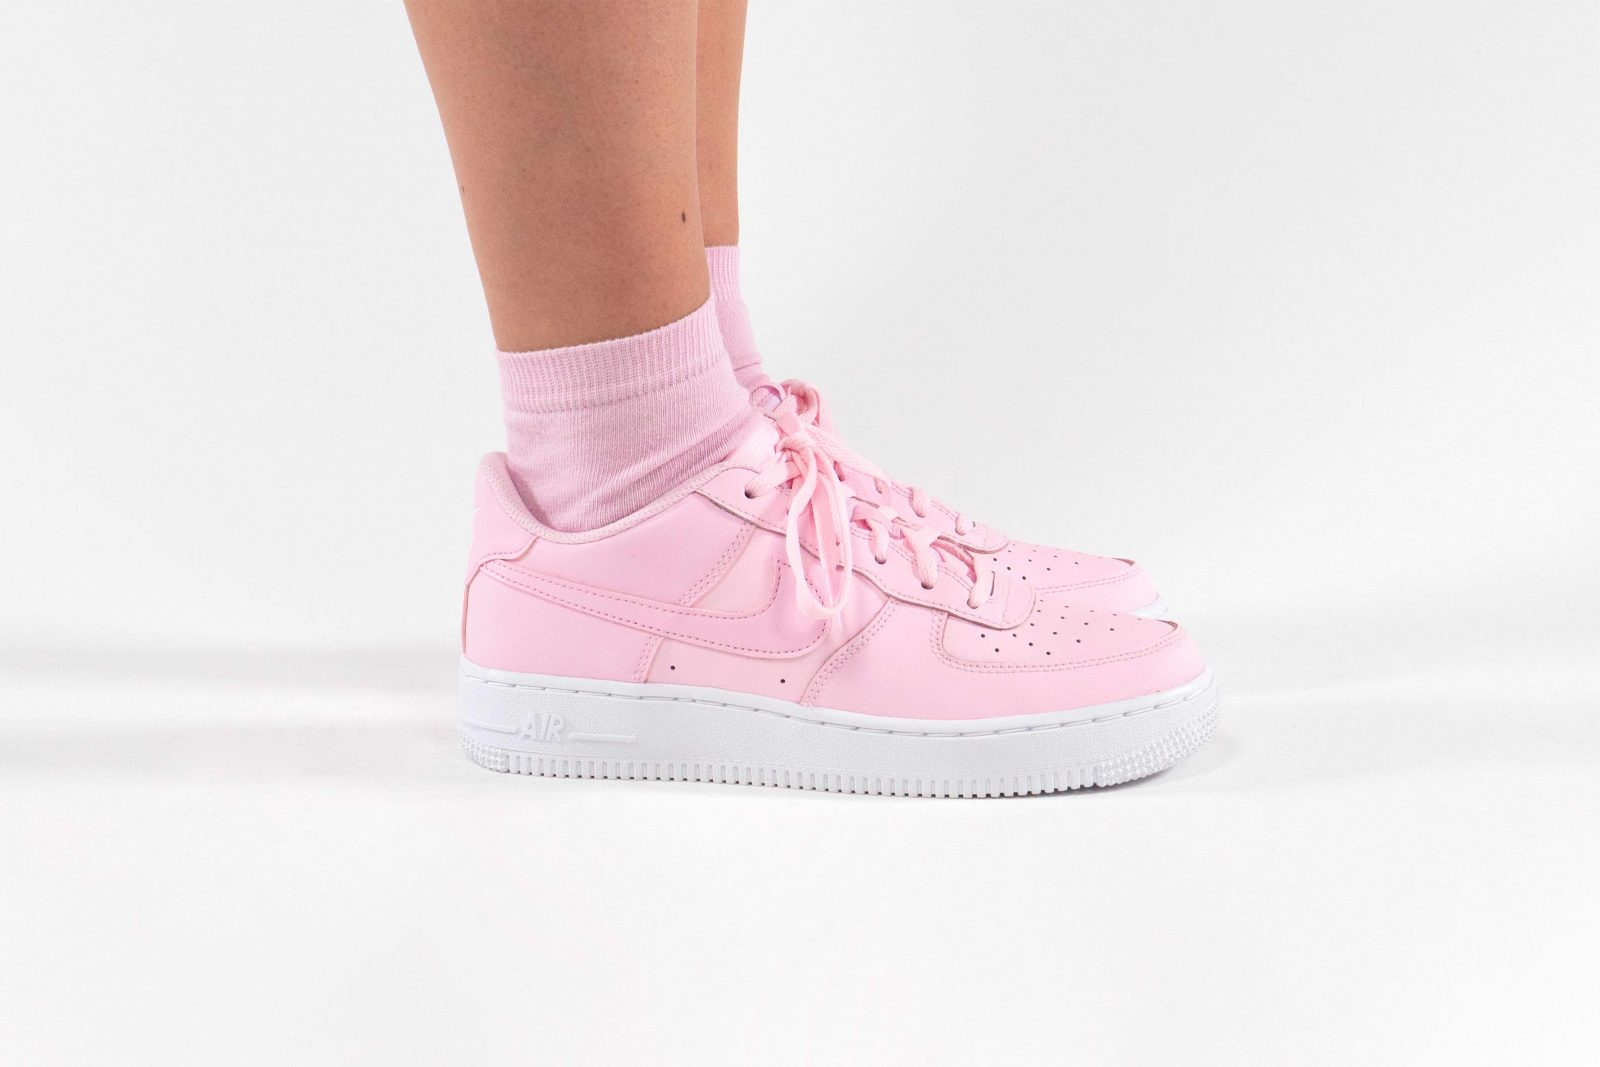 A Closer Look At The Nike Air Force 1 In Foam Pink 4